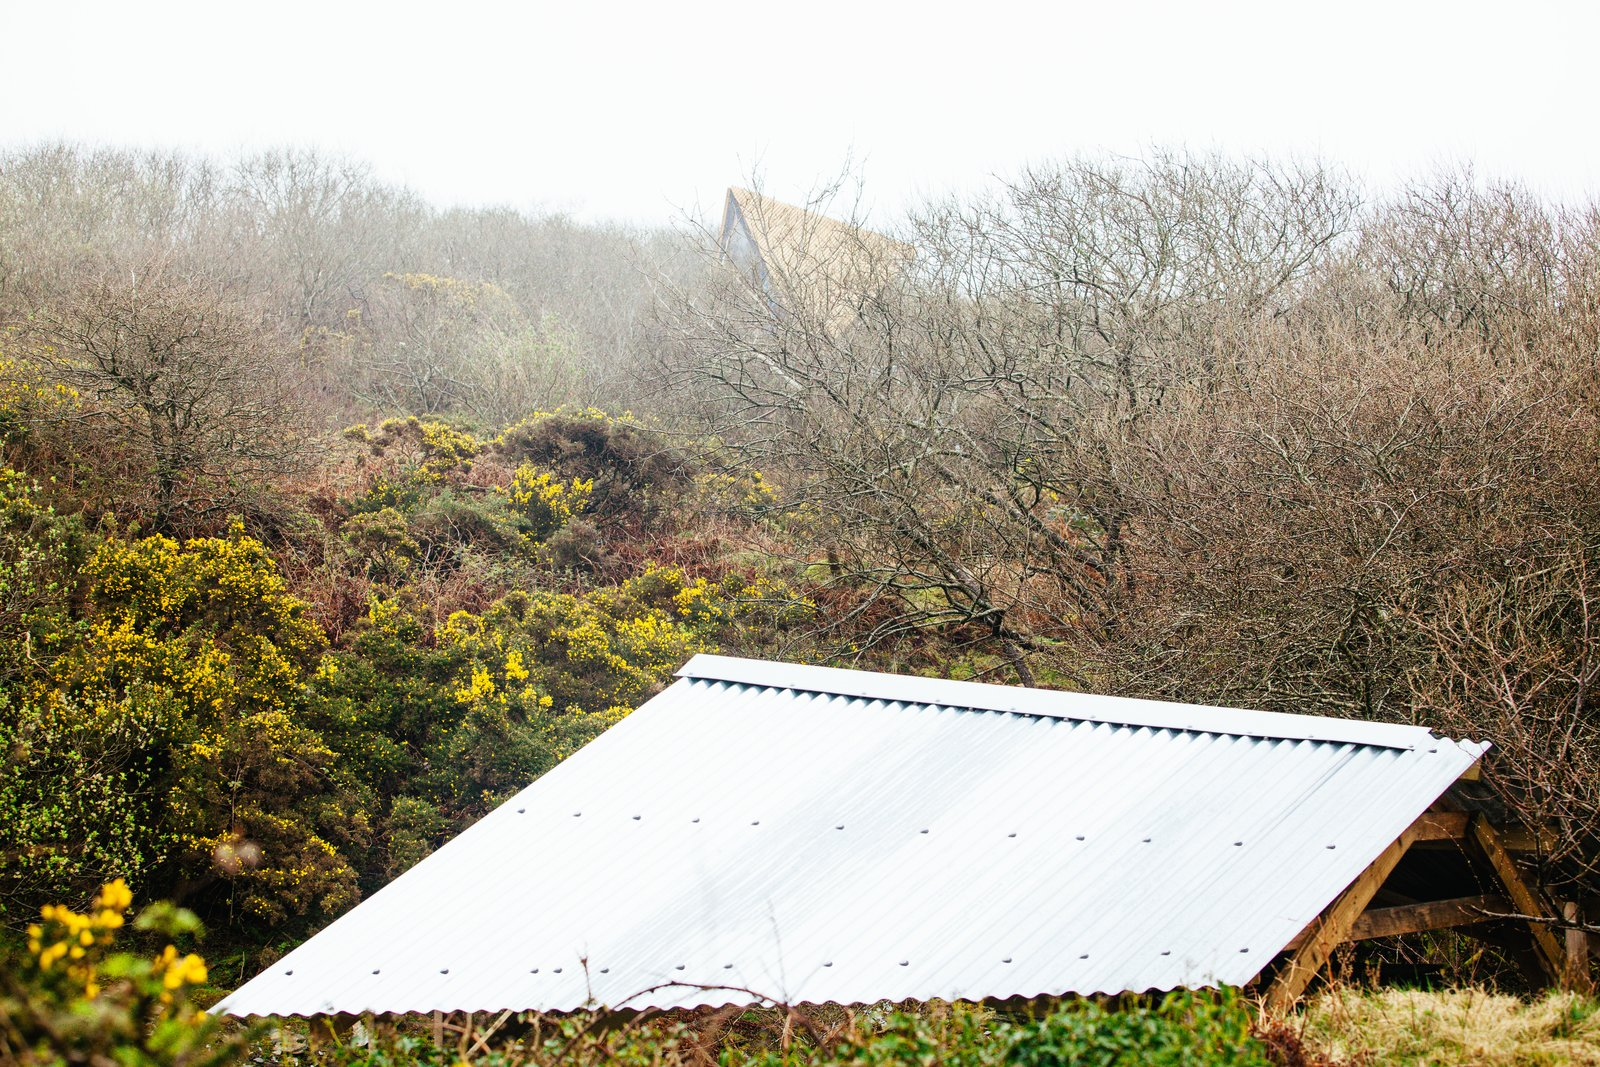 A view of the Kudhva rooflines against the Cornish countryside.